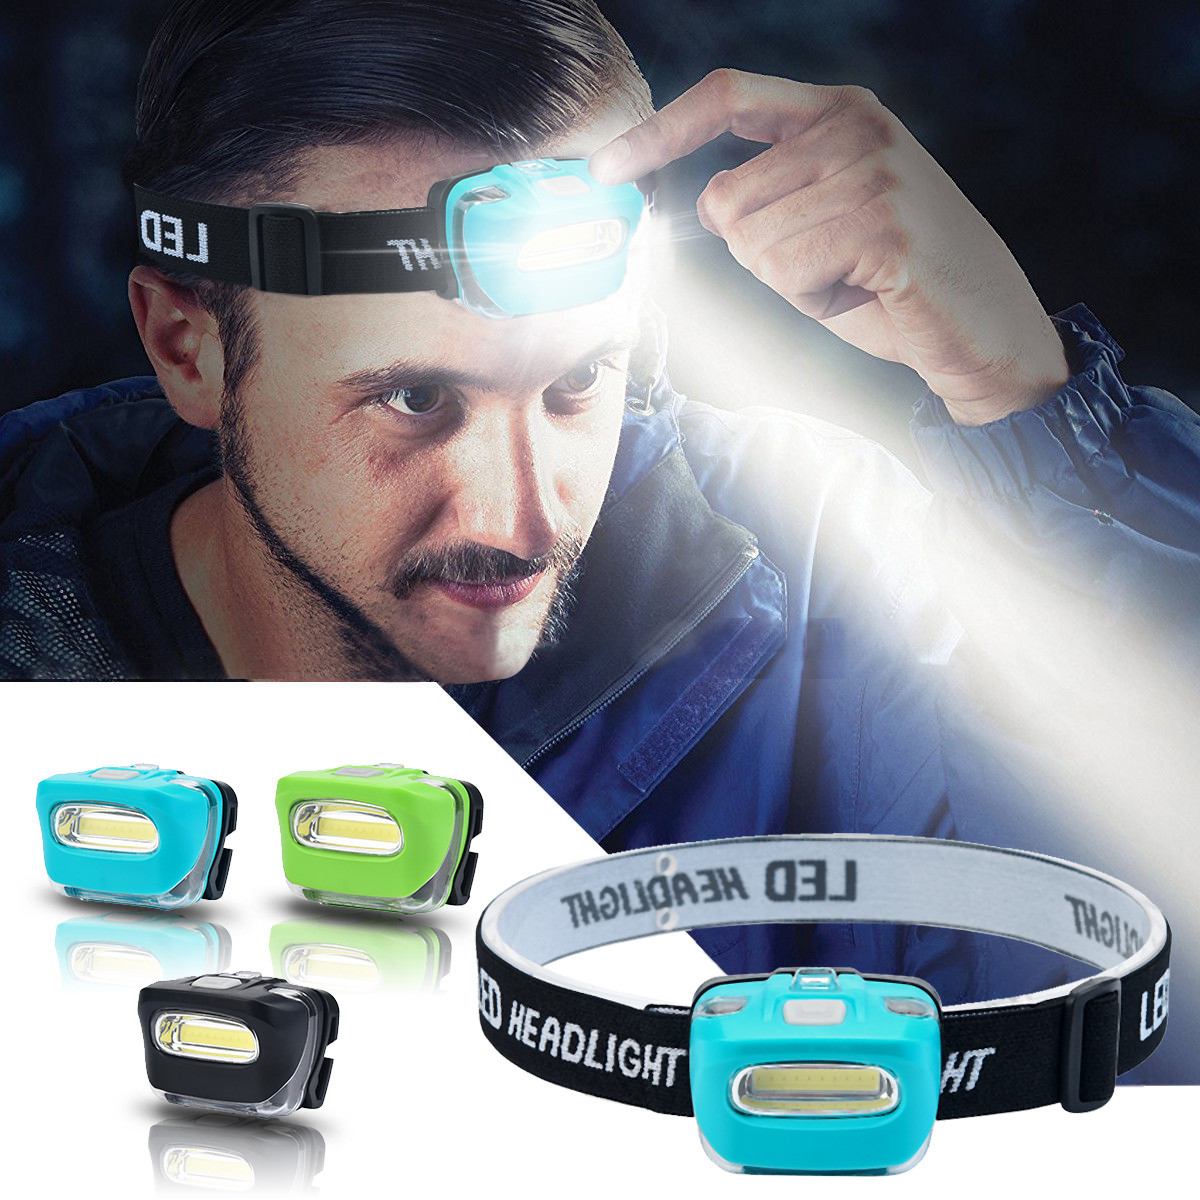 Hot Portable Cob Led Camping Hiking Mini Headlamp Head Torch Light 3 Modes Headlight Waterproof Outdoor Biking Camping Equipment